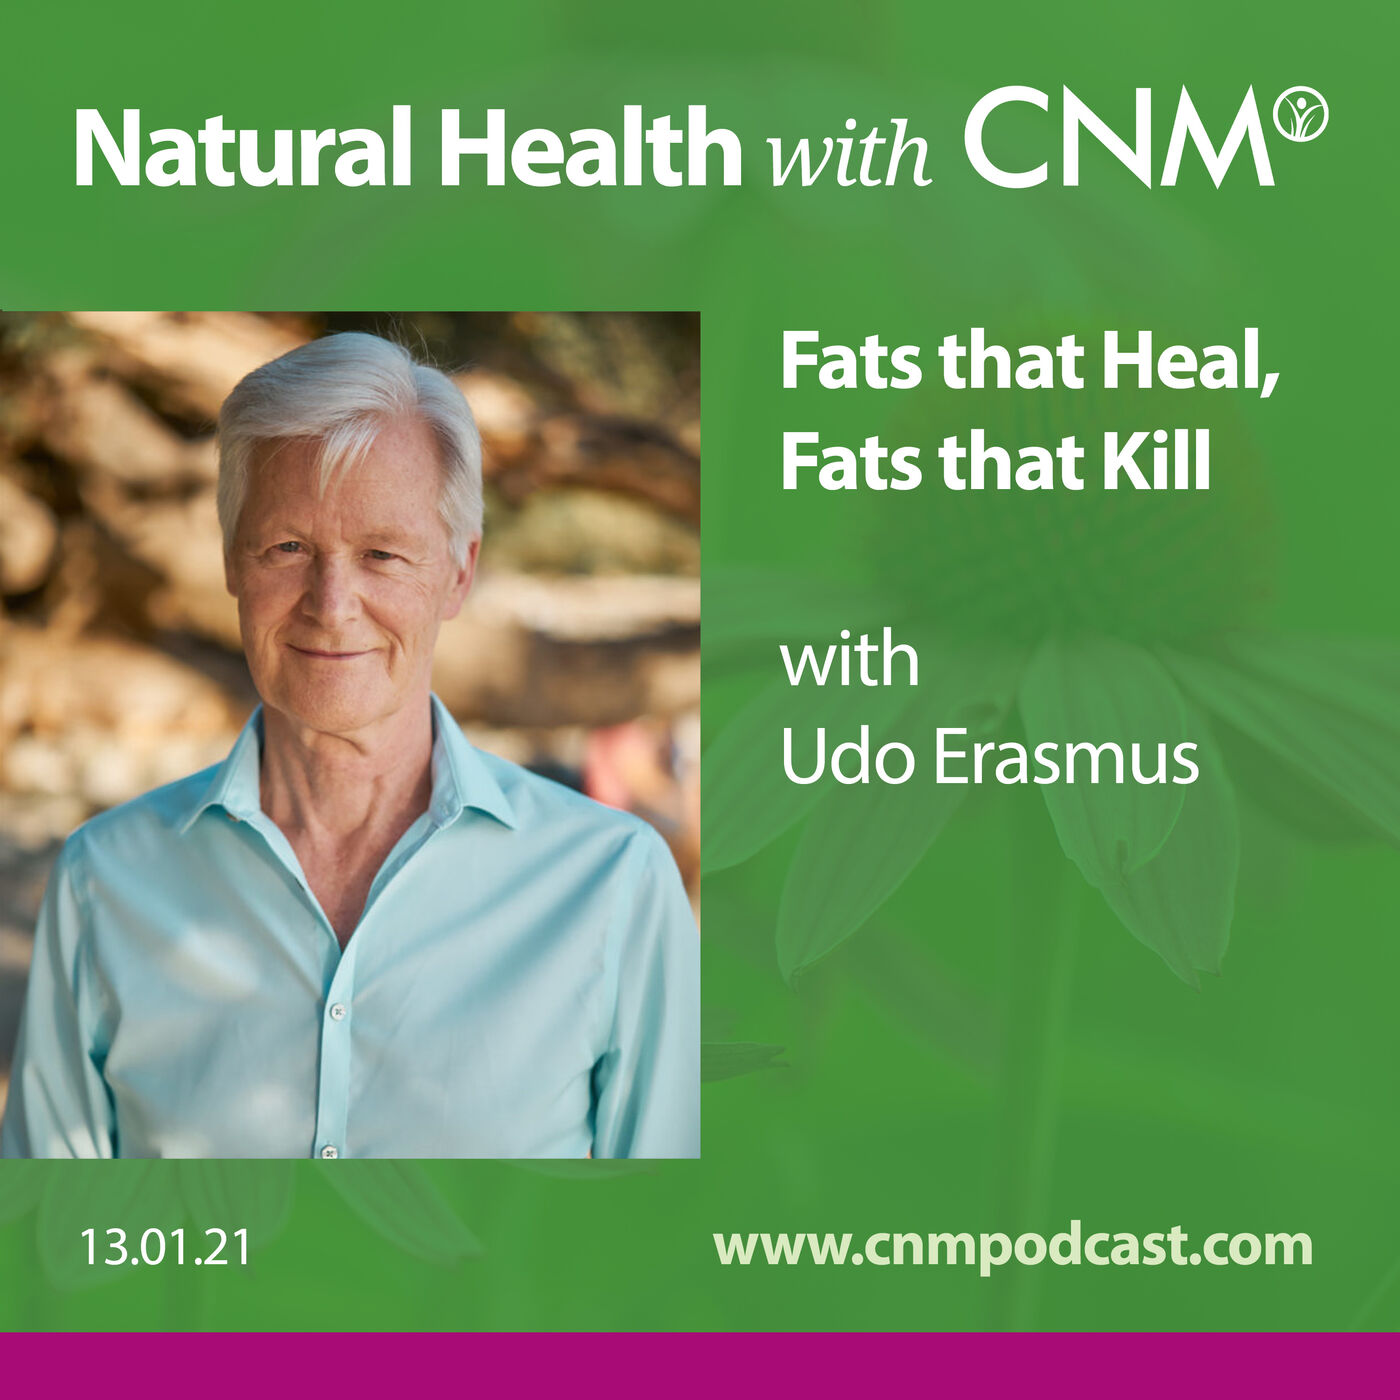 Fats that Heal, Fats that Kill with Udo Erasmus